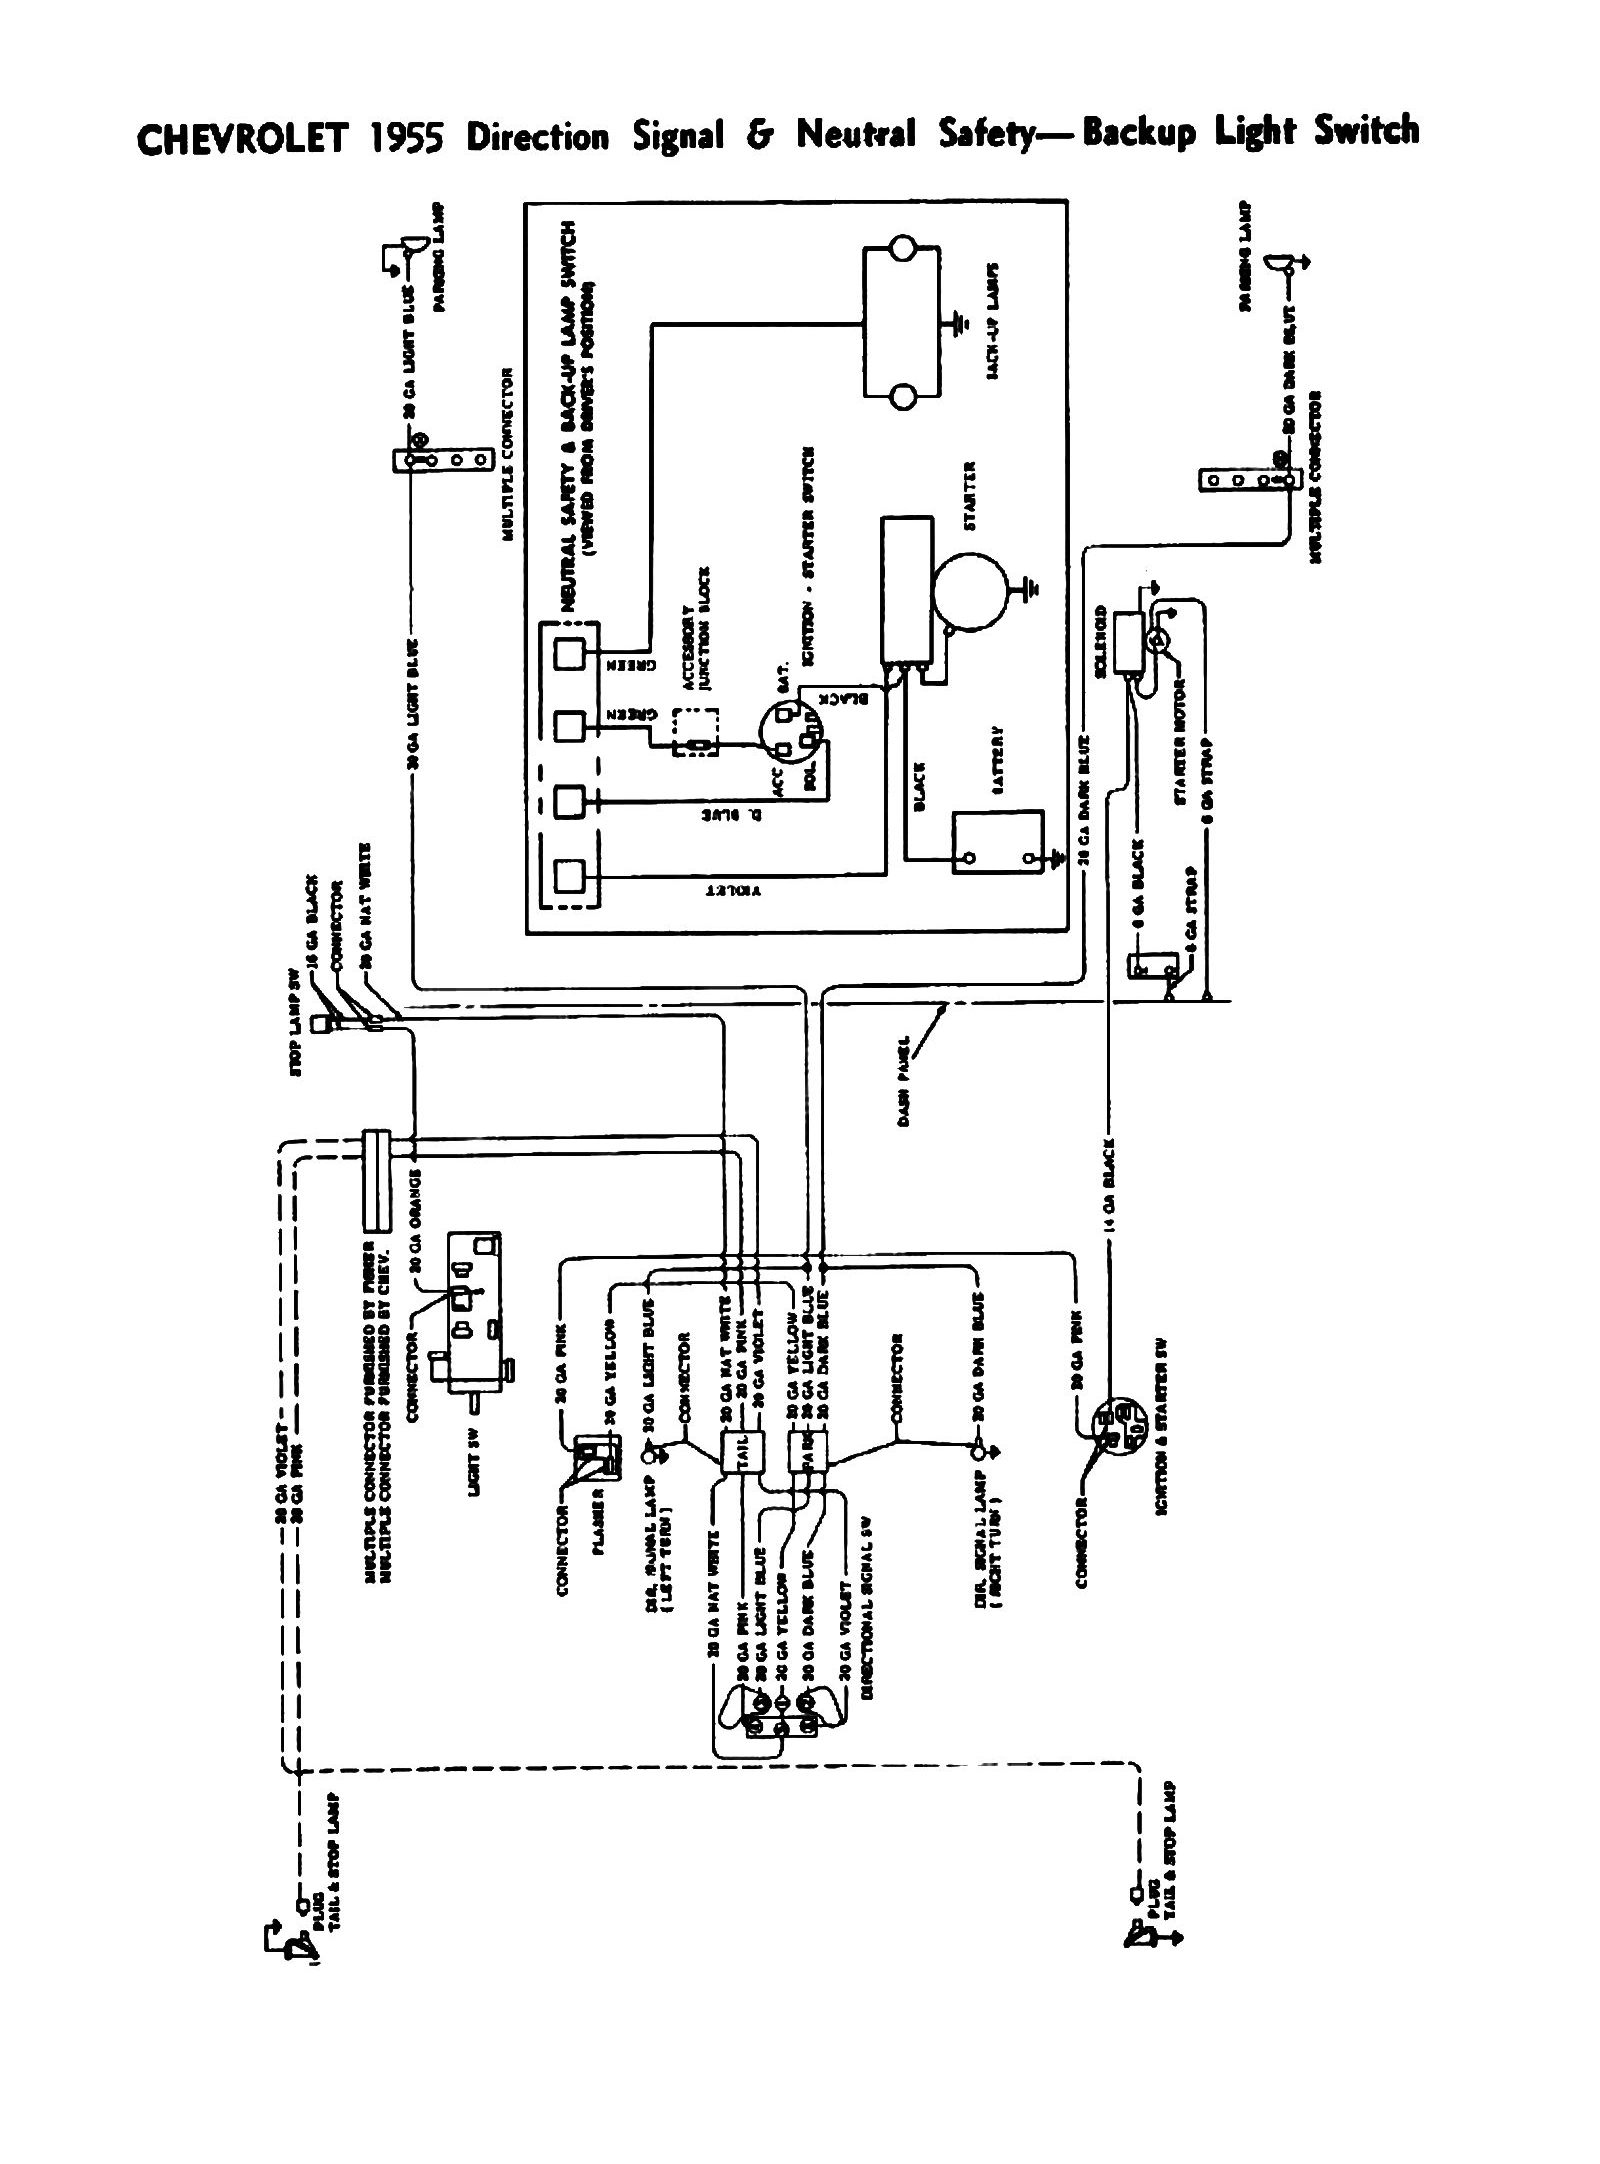 55signal chevy wiring diagrams gm ignition switch wiring diagram at fashall.co